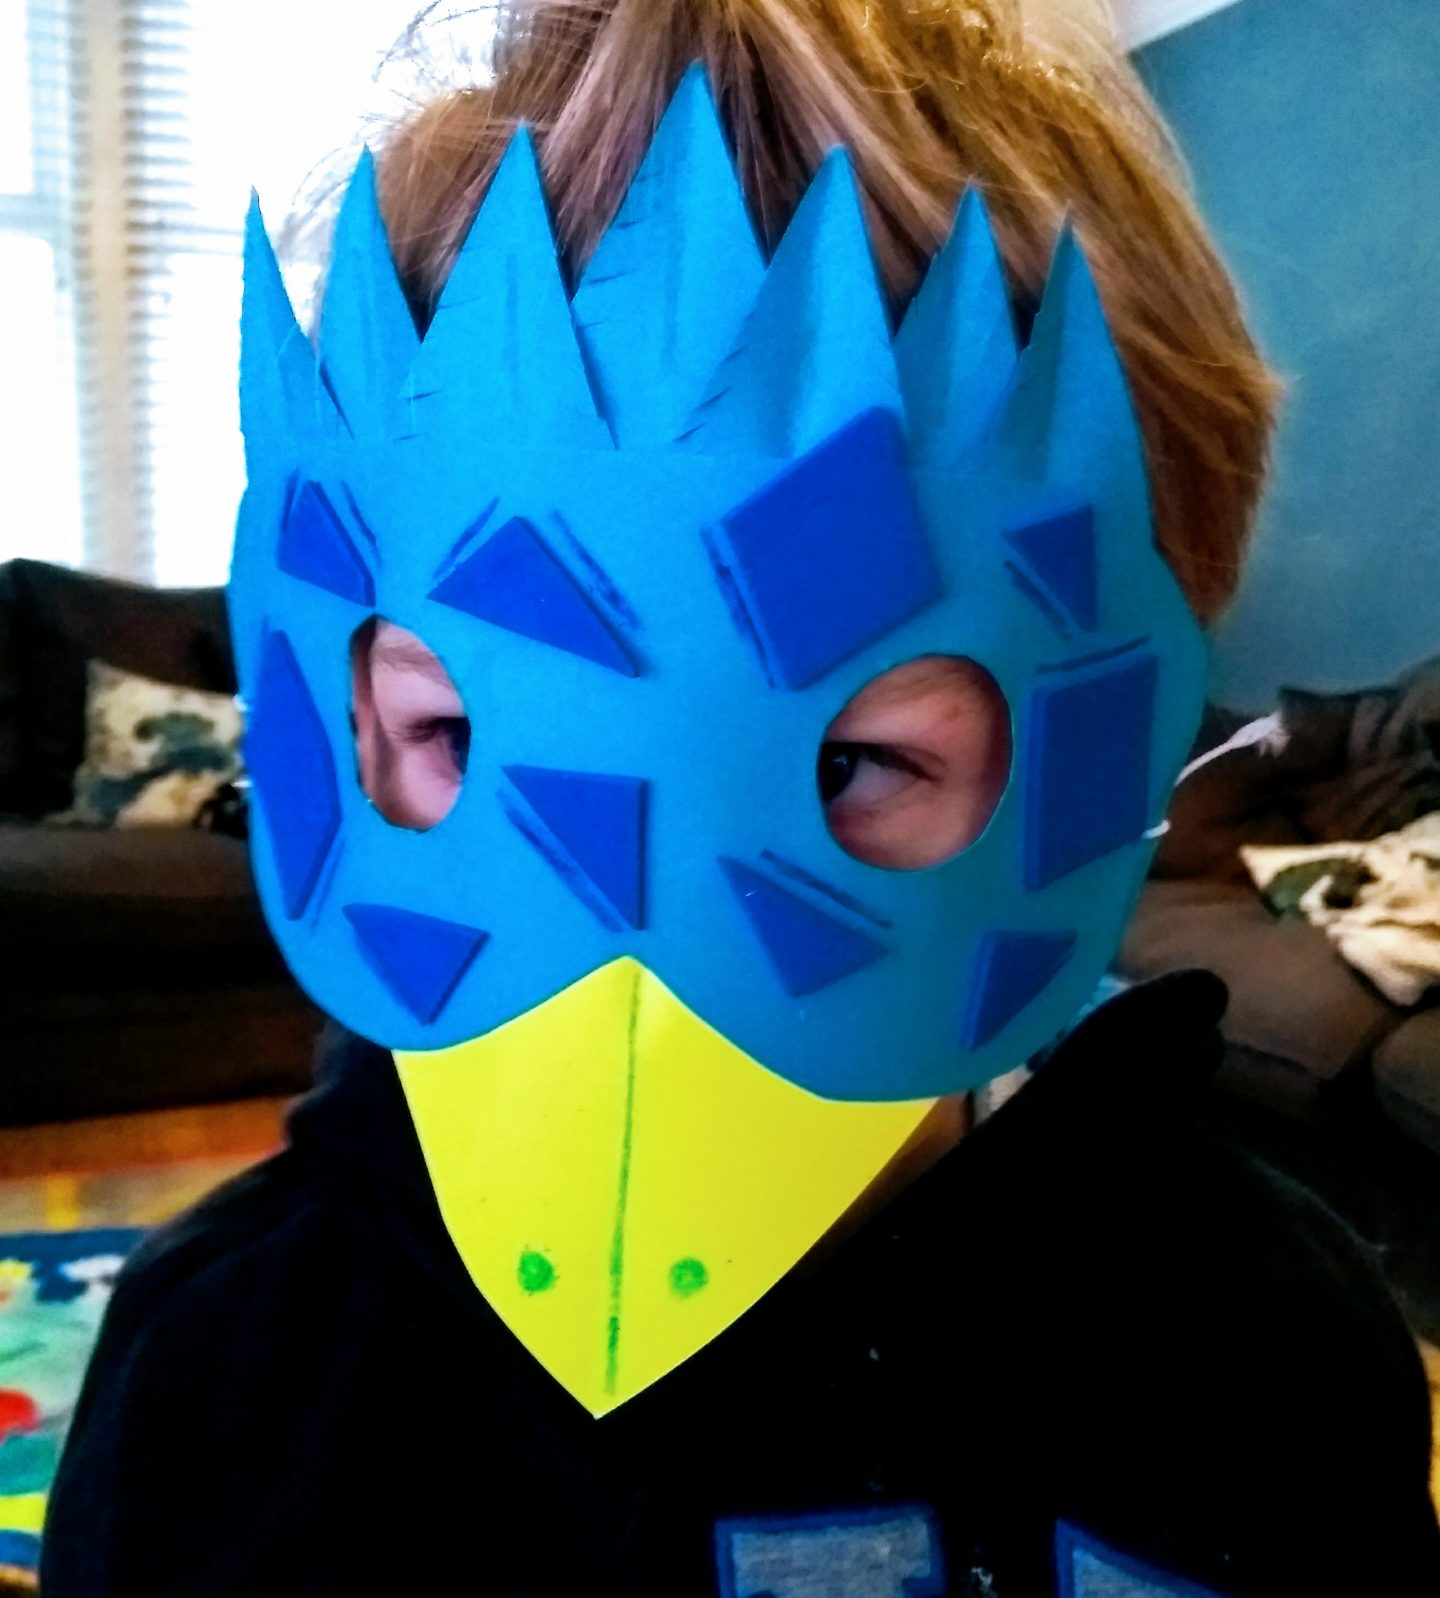 Nathan crafts a parrot mask